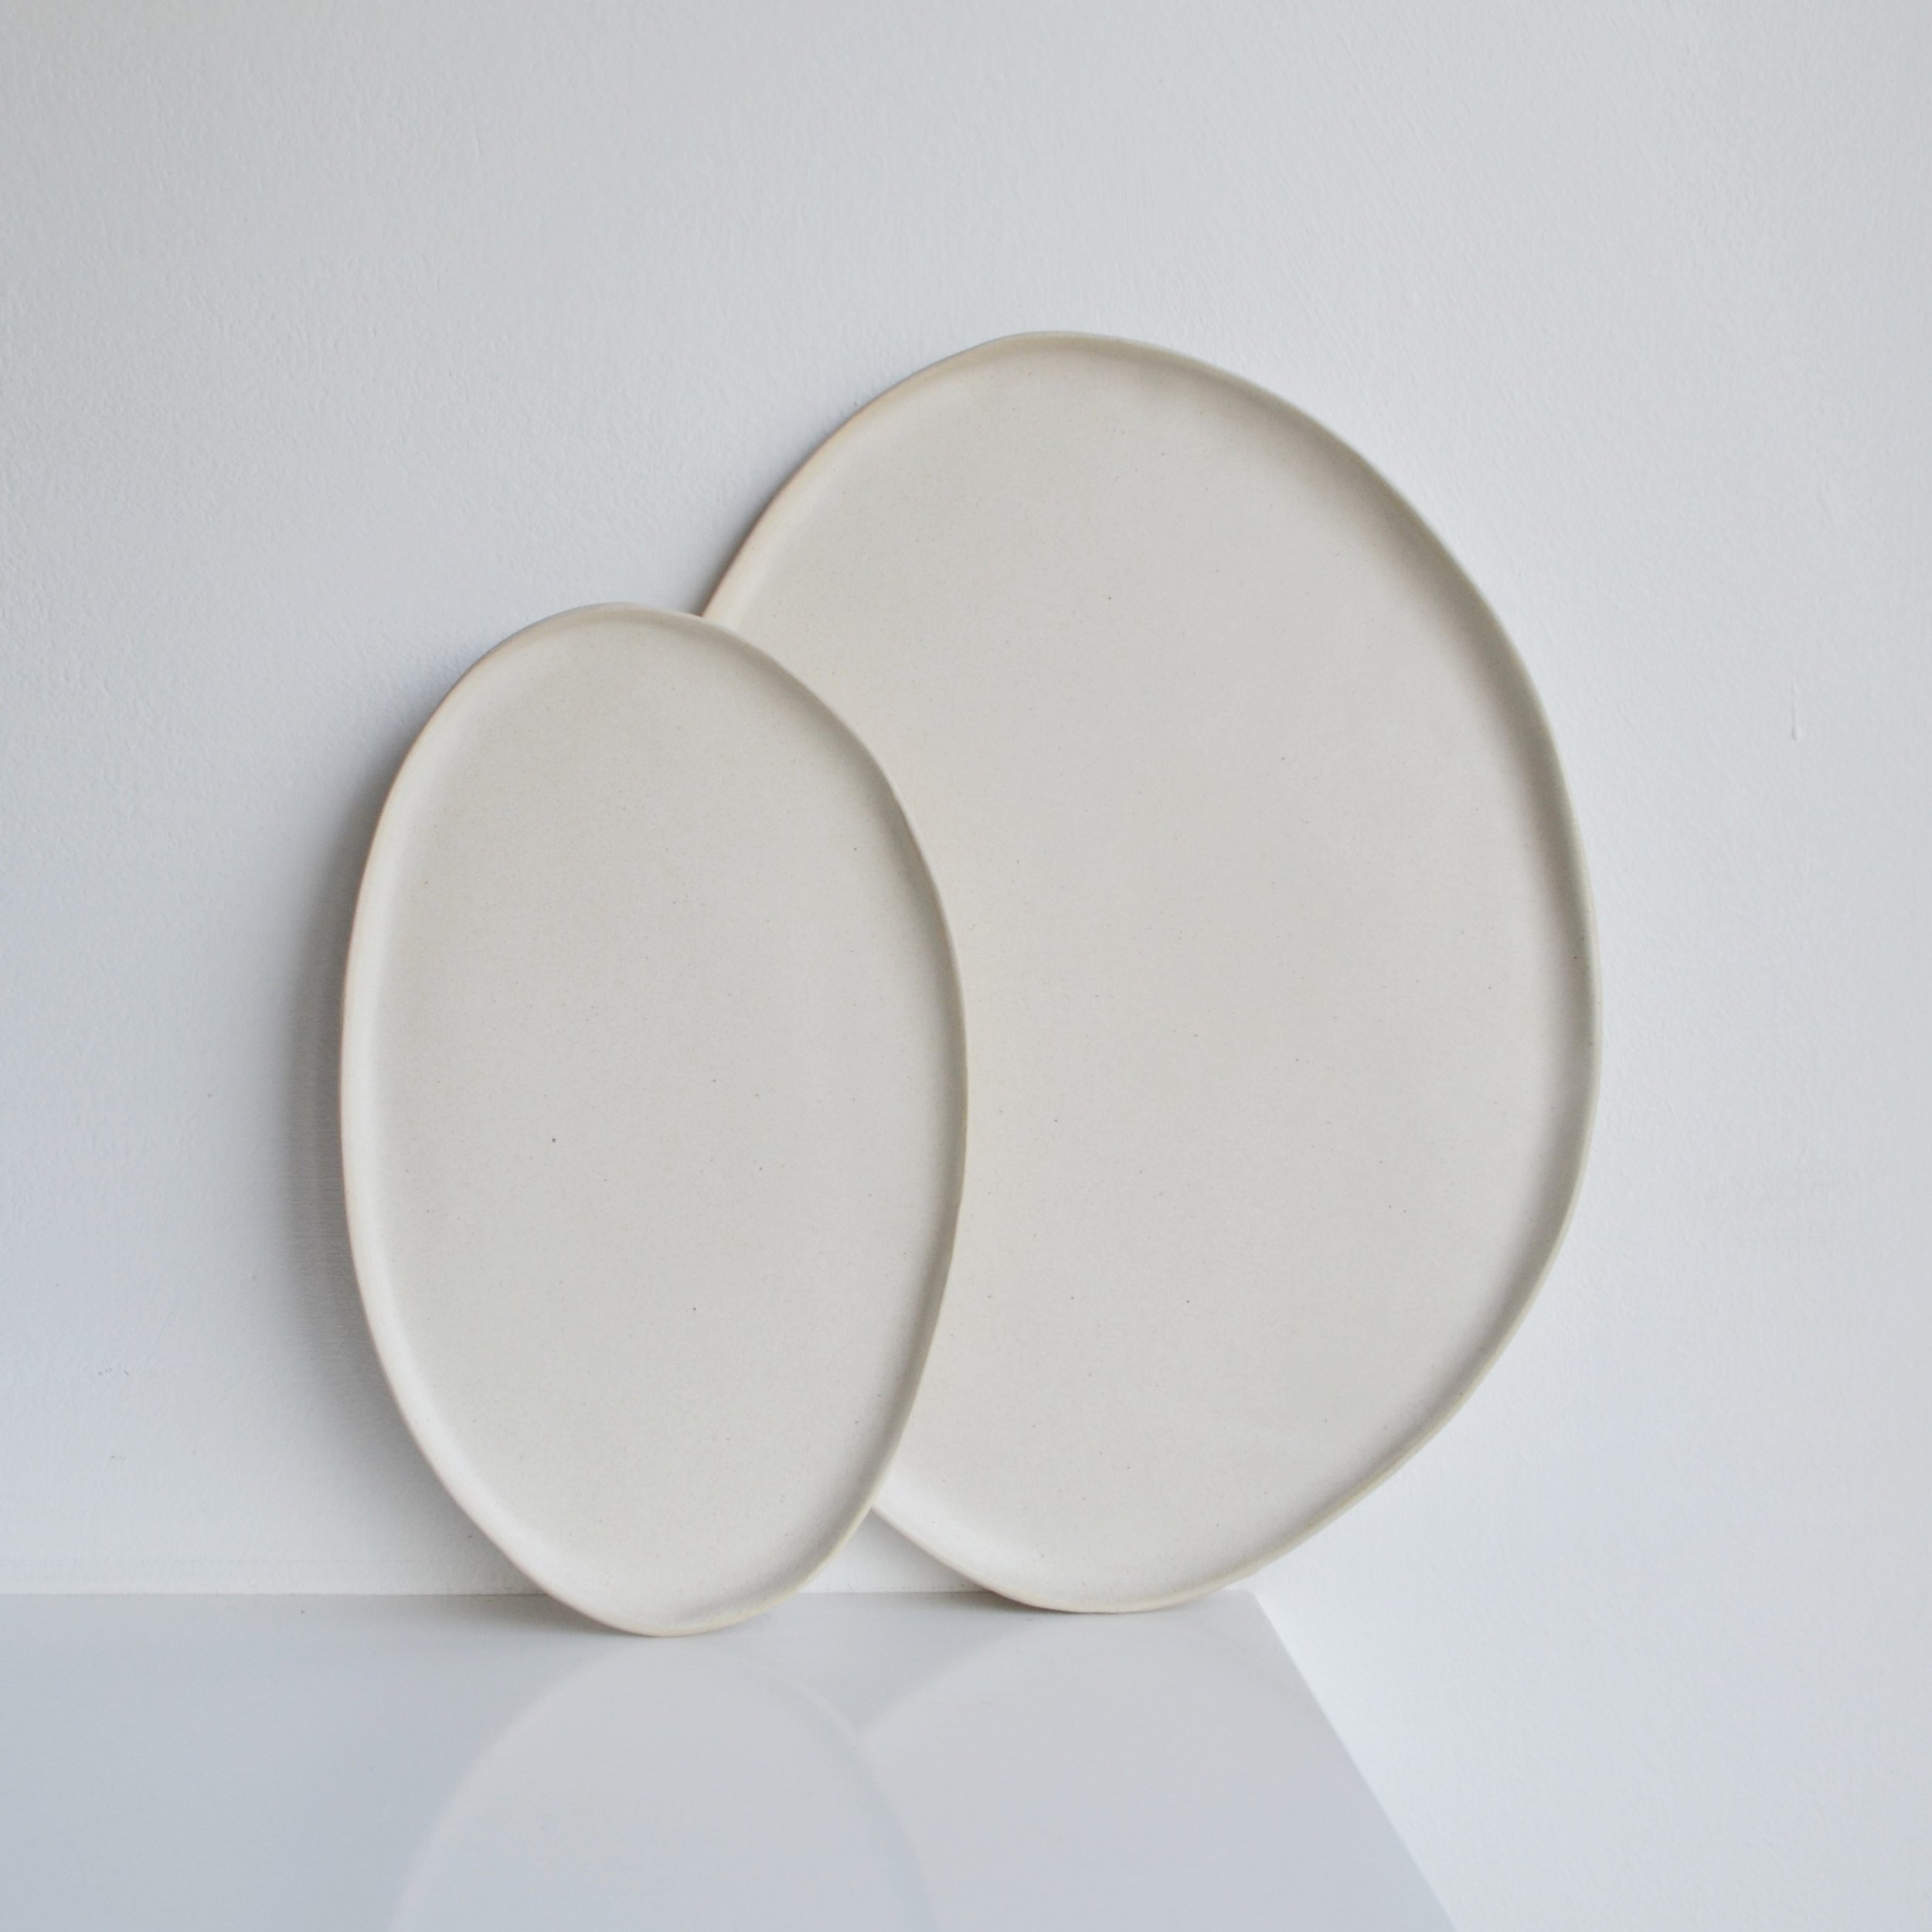 Satin Cream Oval Platters  ceramic  Small: 21 x 13 cm approx.   £25  Large: 33 x 20 cm approx.   £ 45